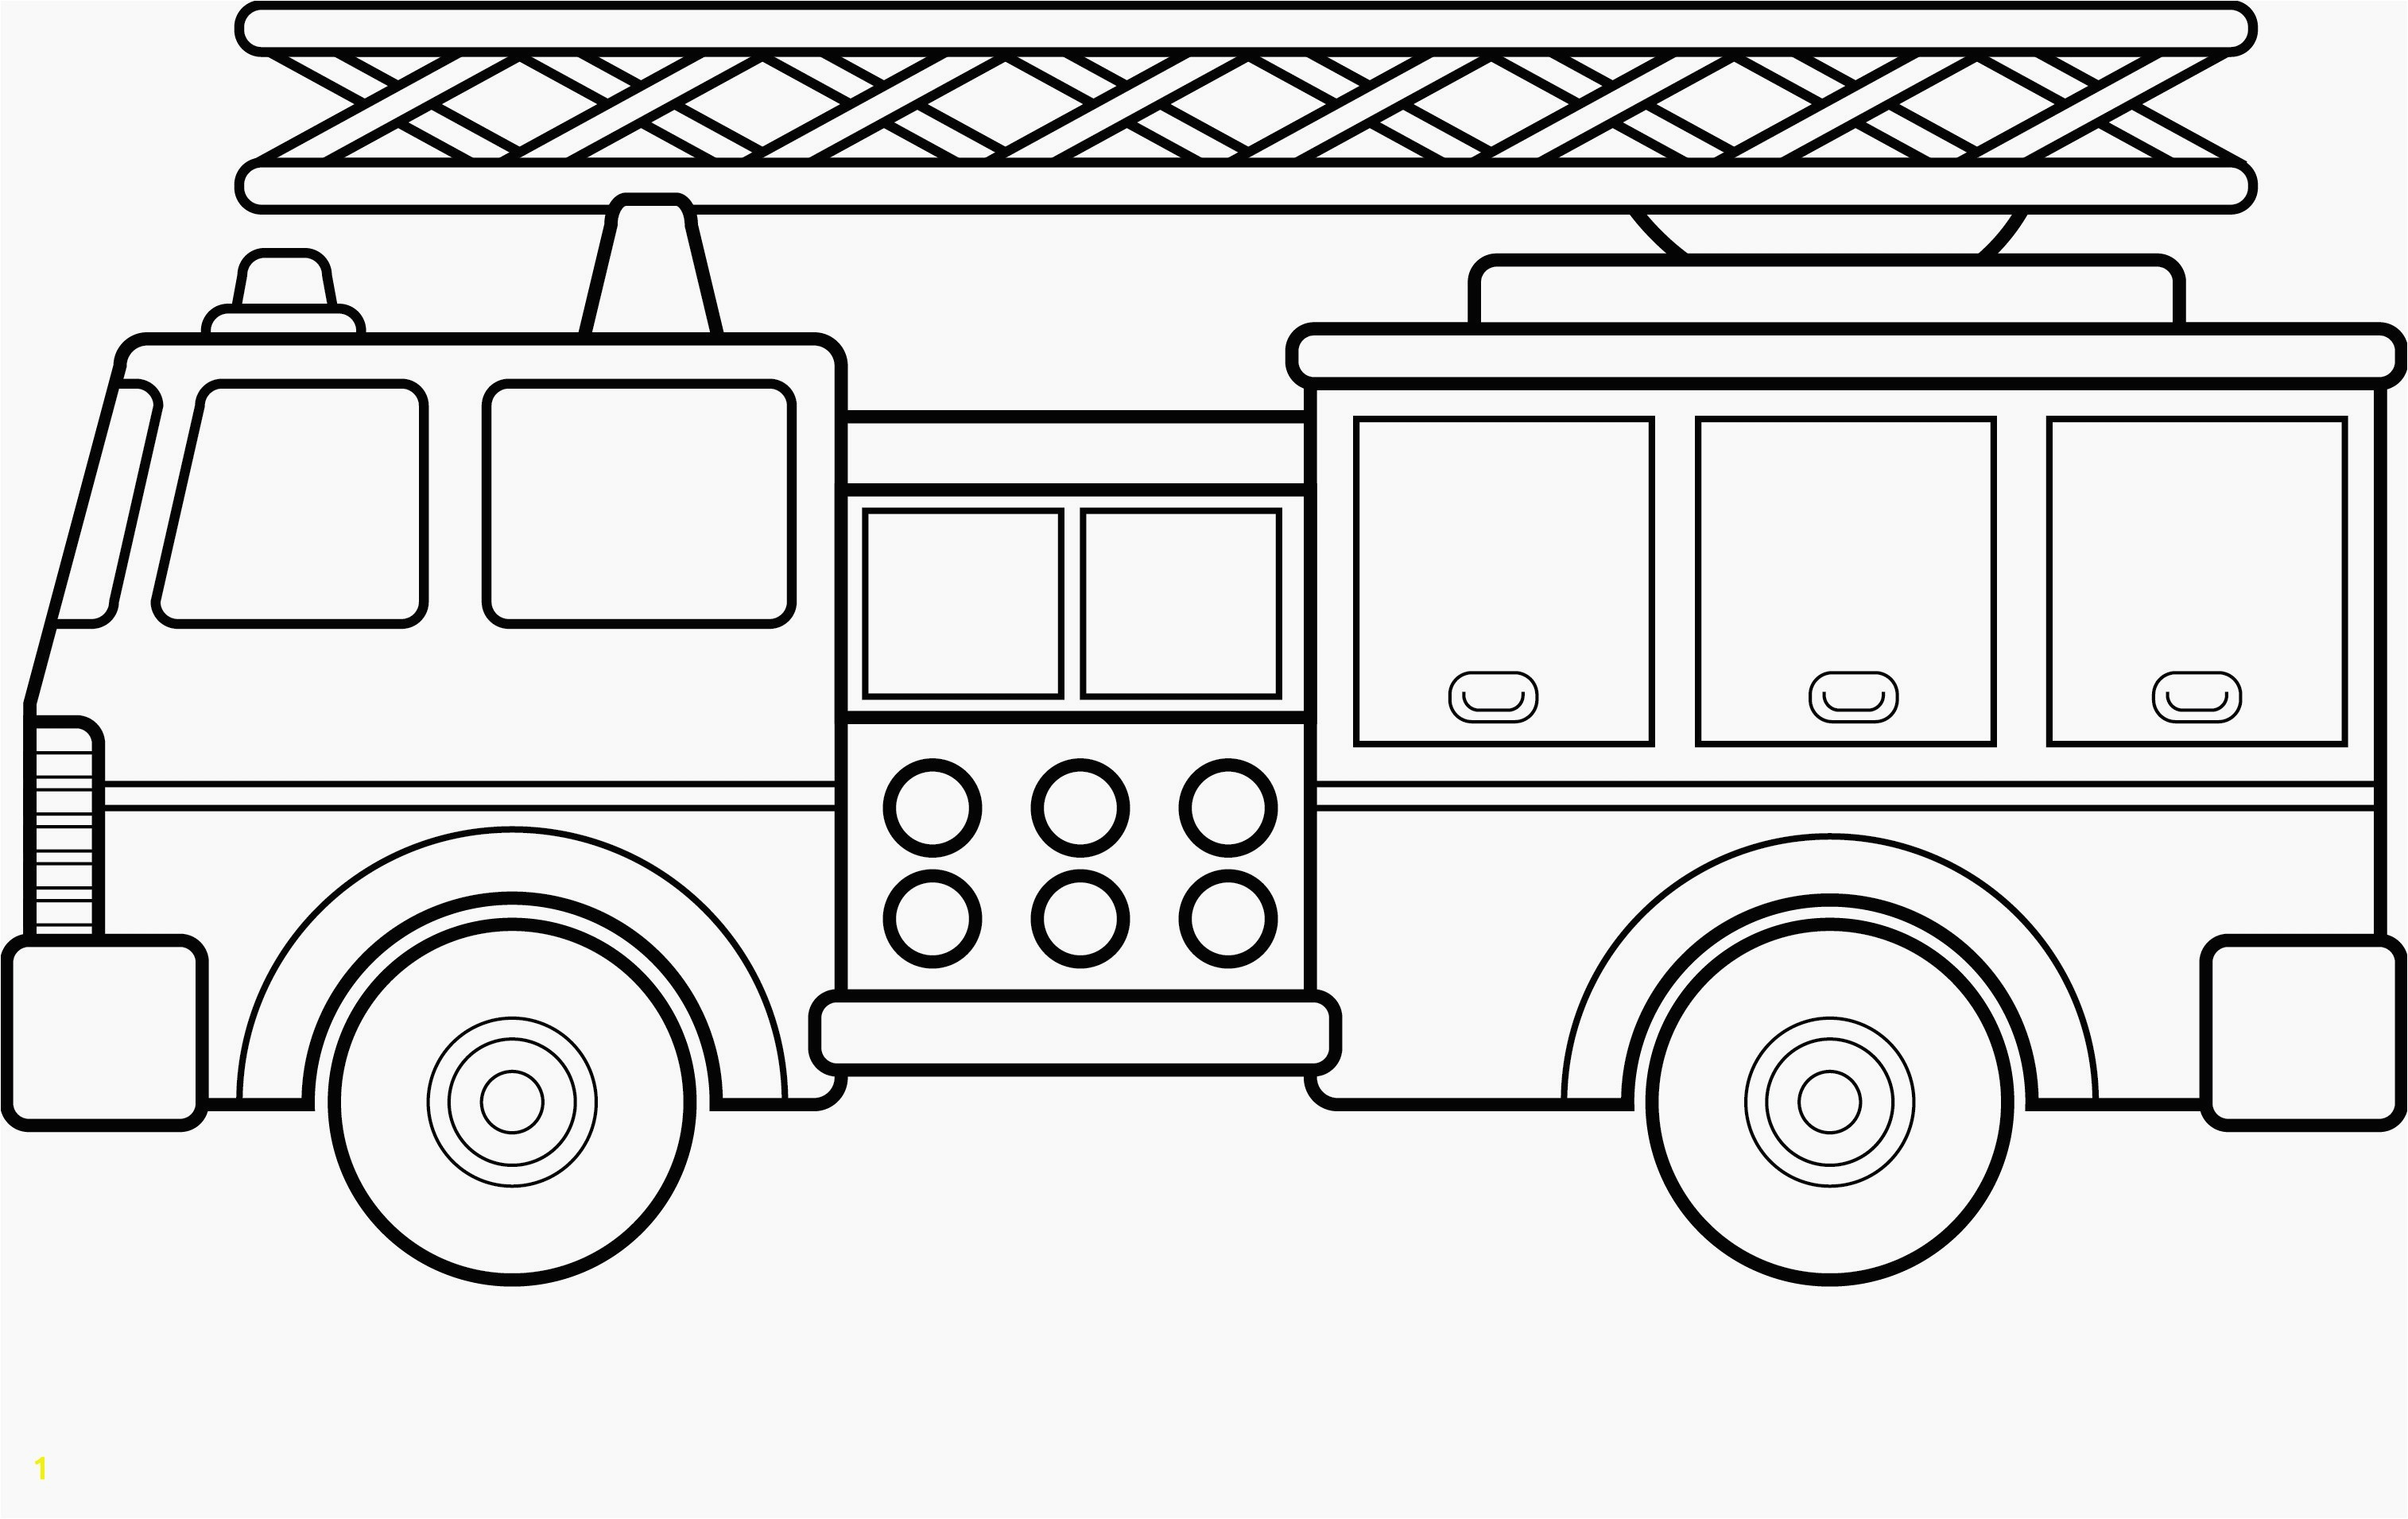 Fire Truck Coloring Page Dump Truck Coloring Pages Fire Truck Coloring Pages Printable